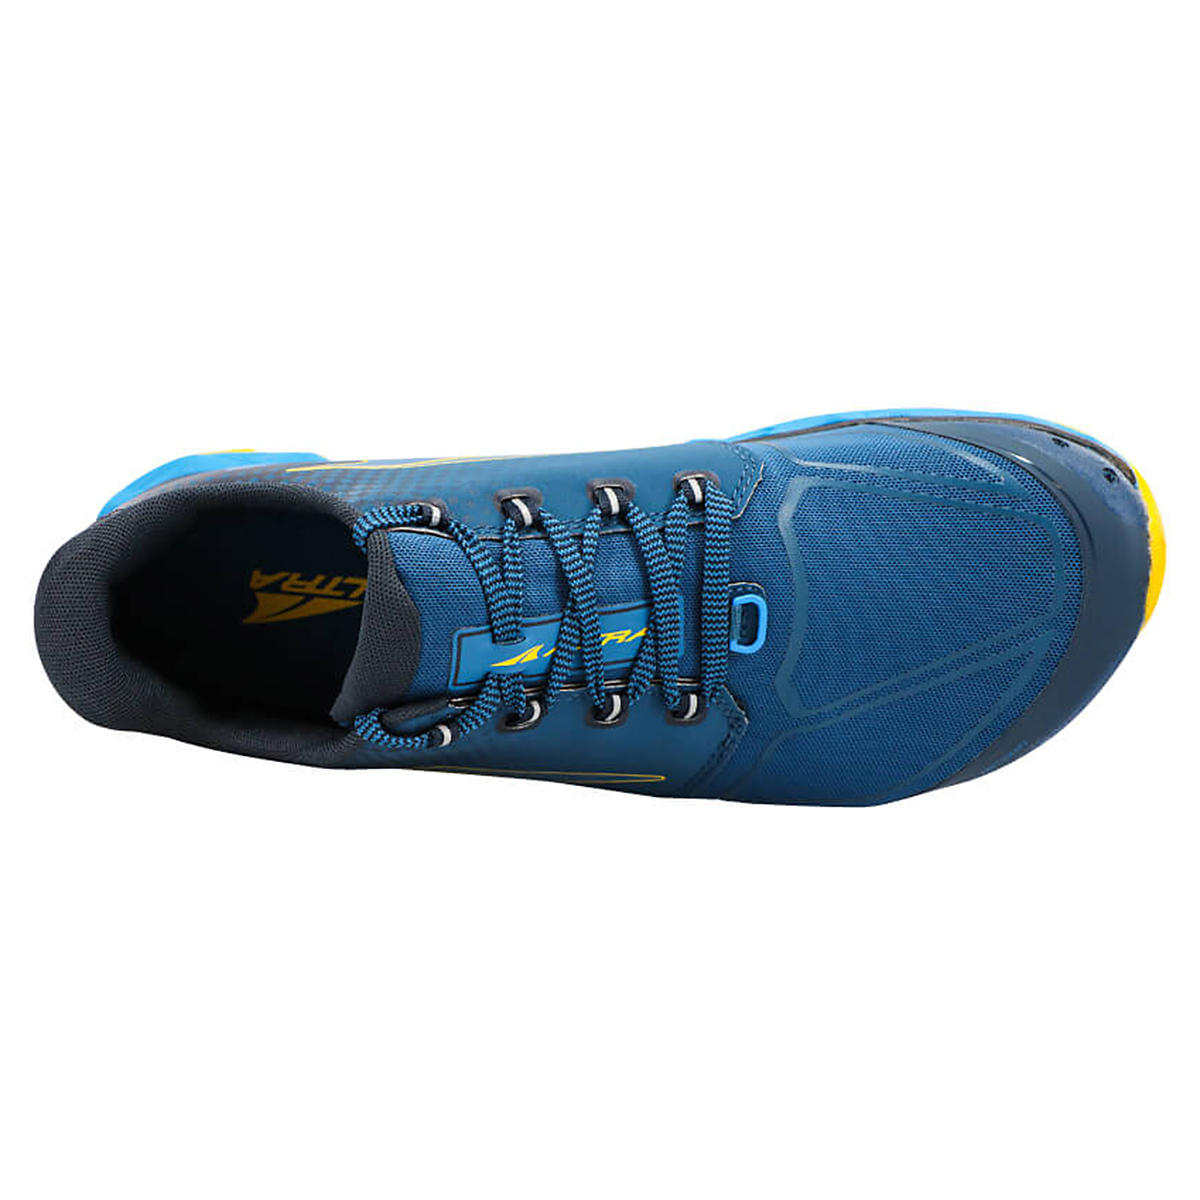 Men's Altra Superior 4.5 Trail Running Shoe - Color: Blue/Yellow - Size: 7 - Width: Regular, Blue/Yellow, large, image 4